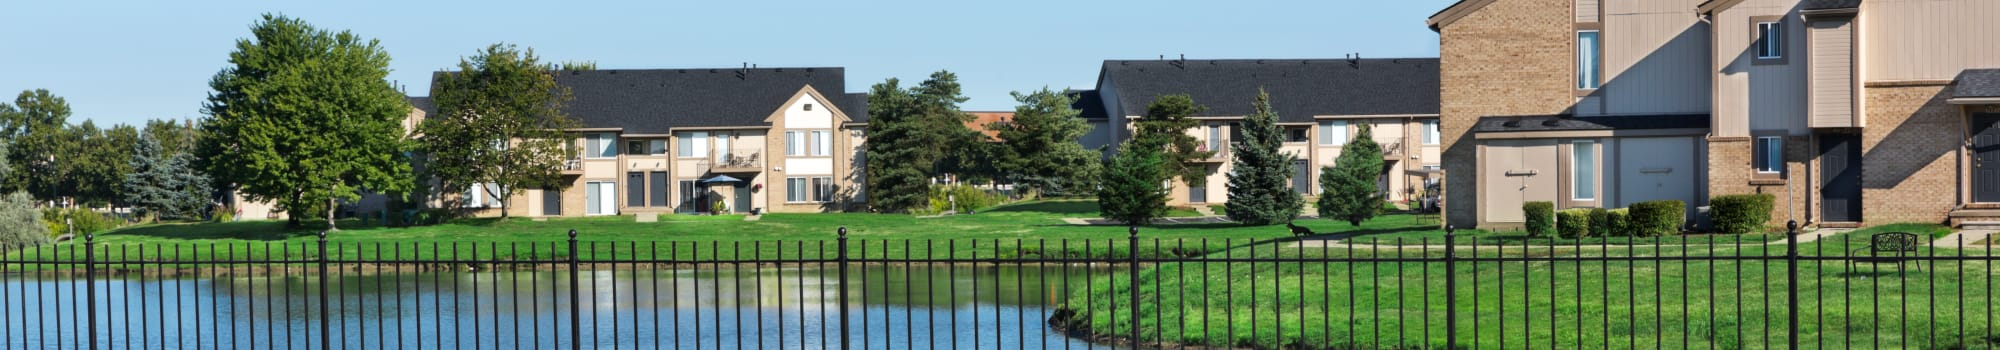 Amenities at Lakeside Terraces in Sterling Heights, Michigan